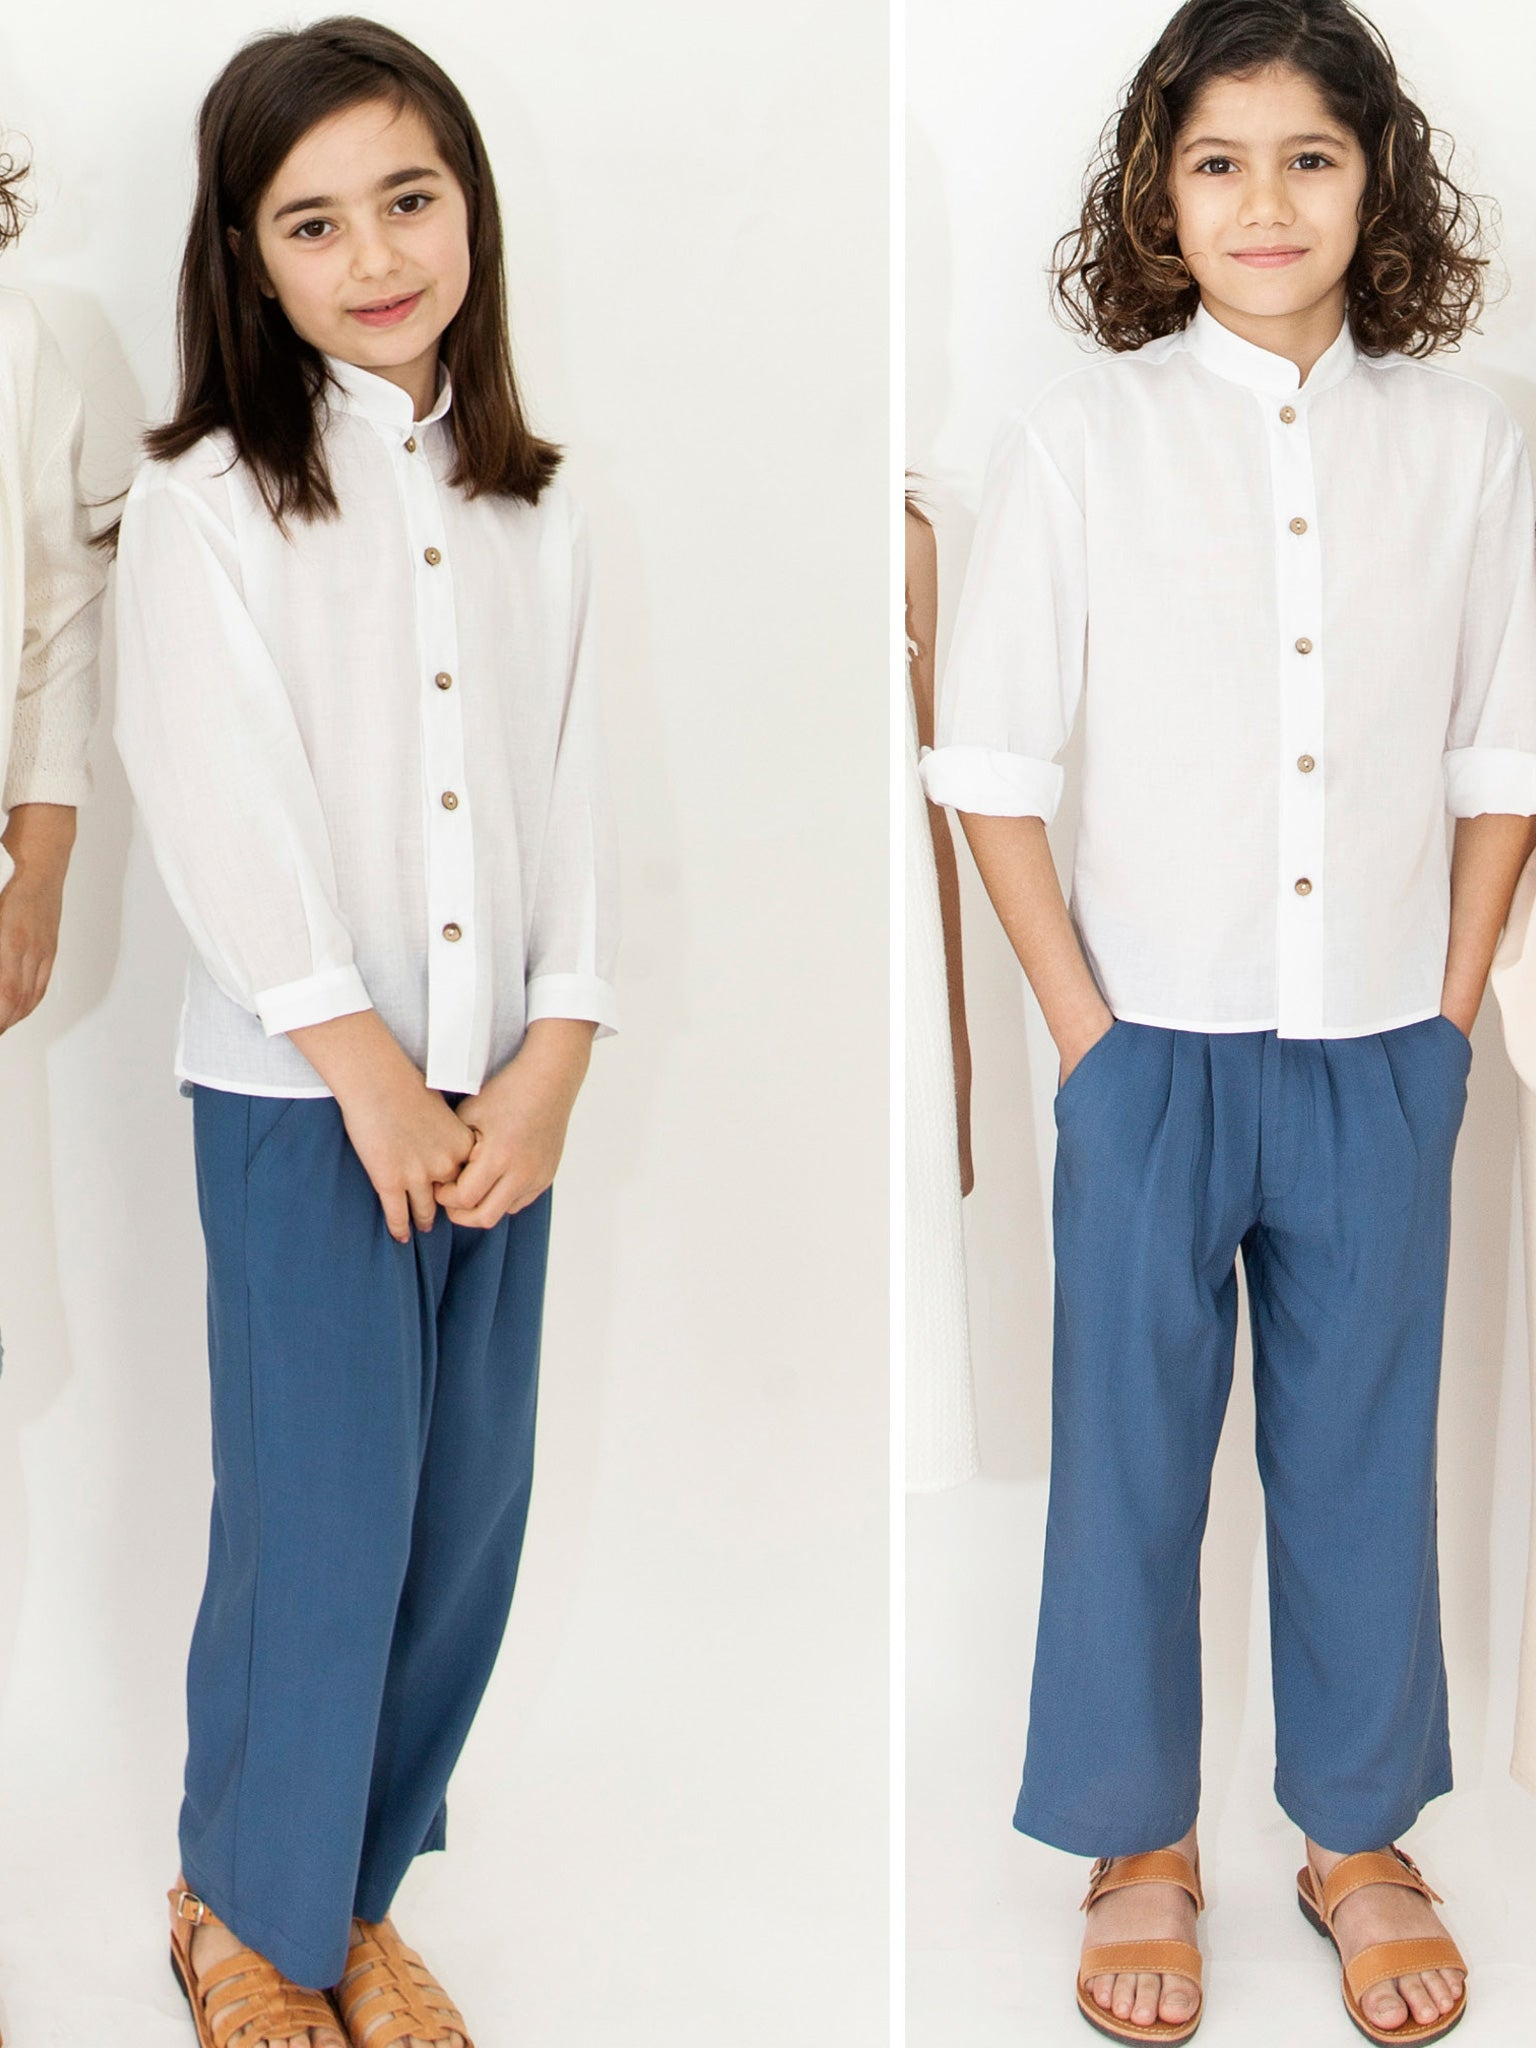 Blue Pants For Boys And Girls